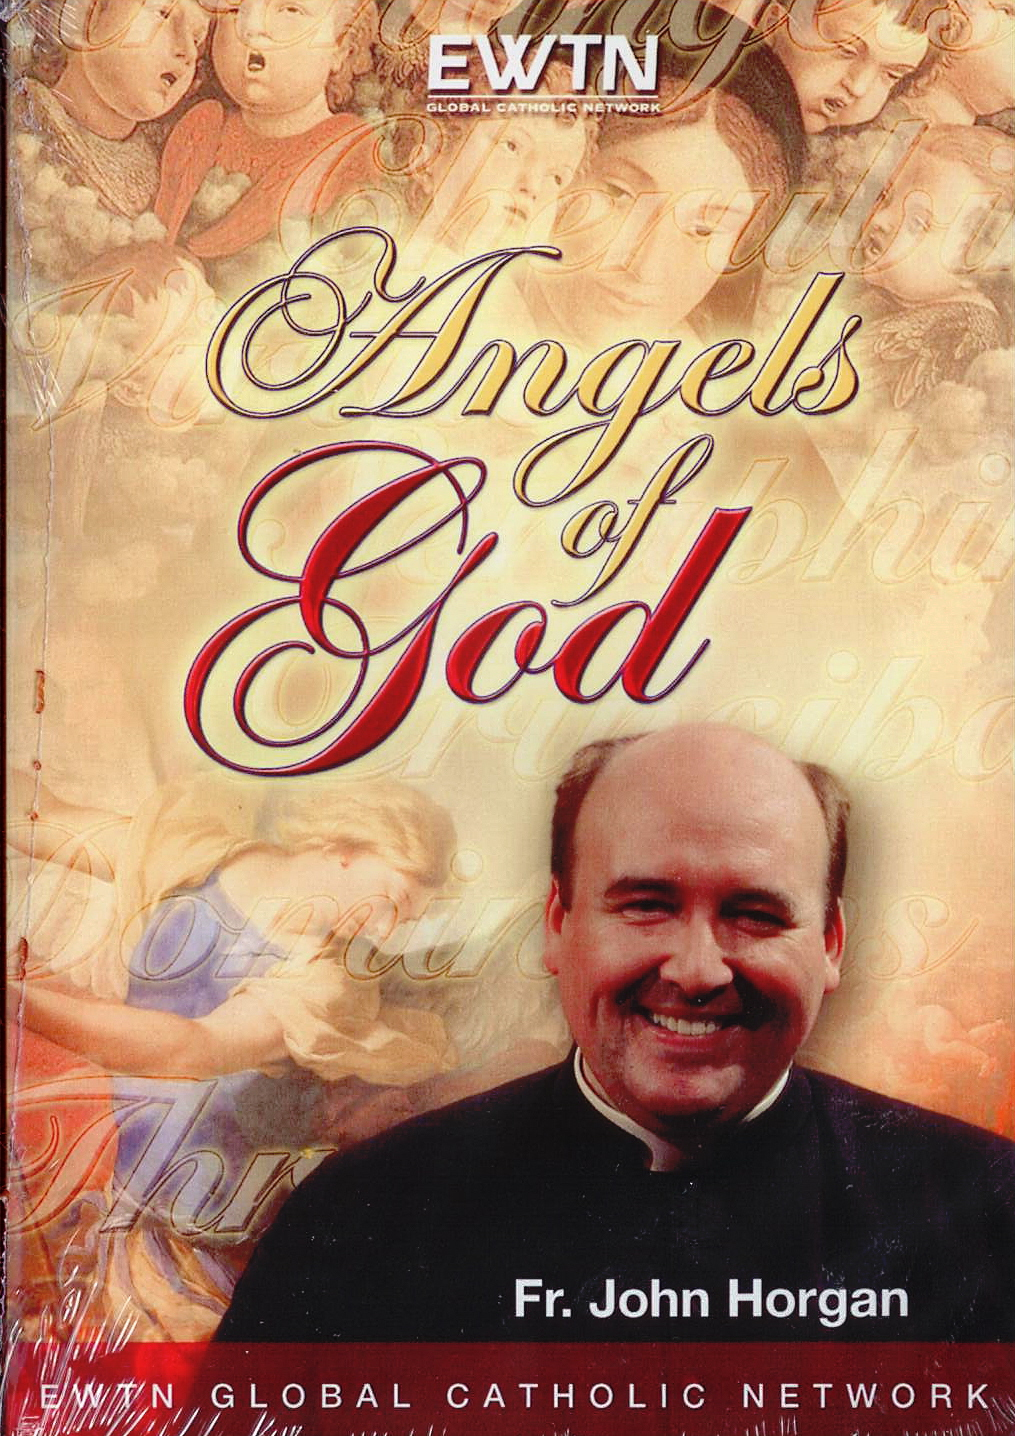 DVD-Angels of God, Title; Fr. John Horgan, Lecturer